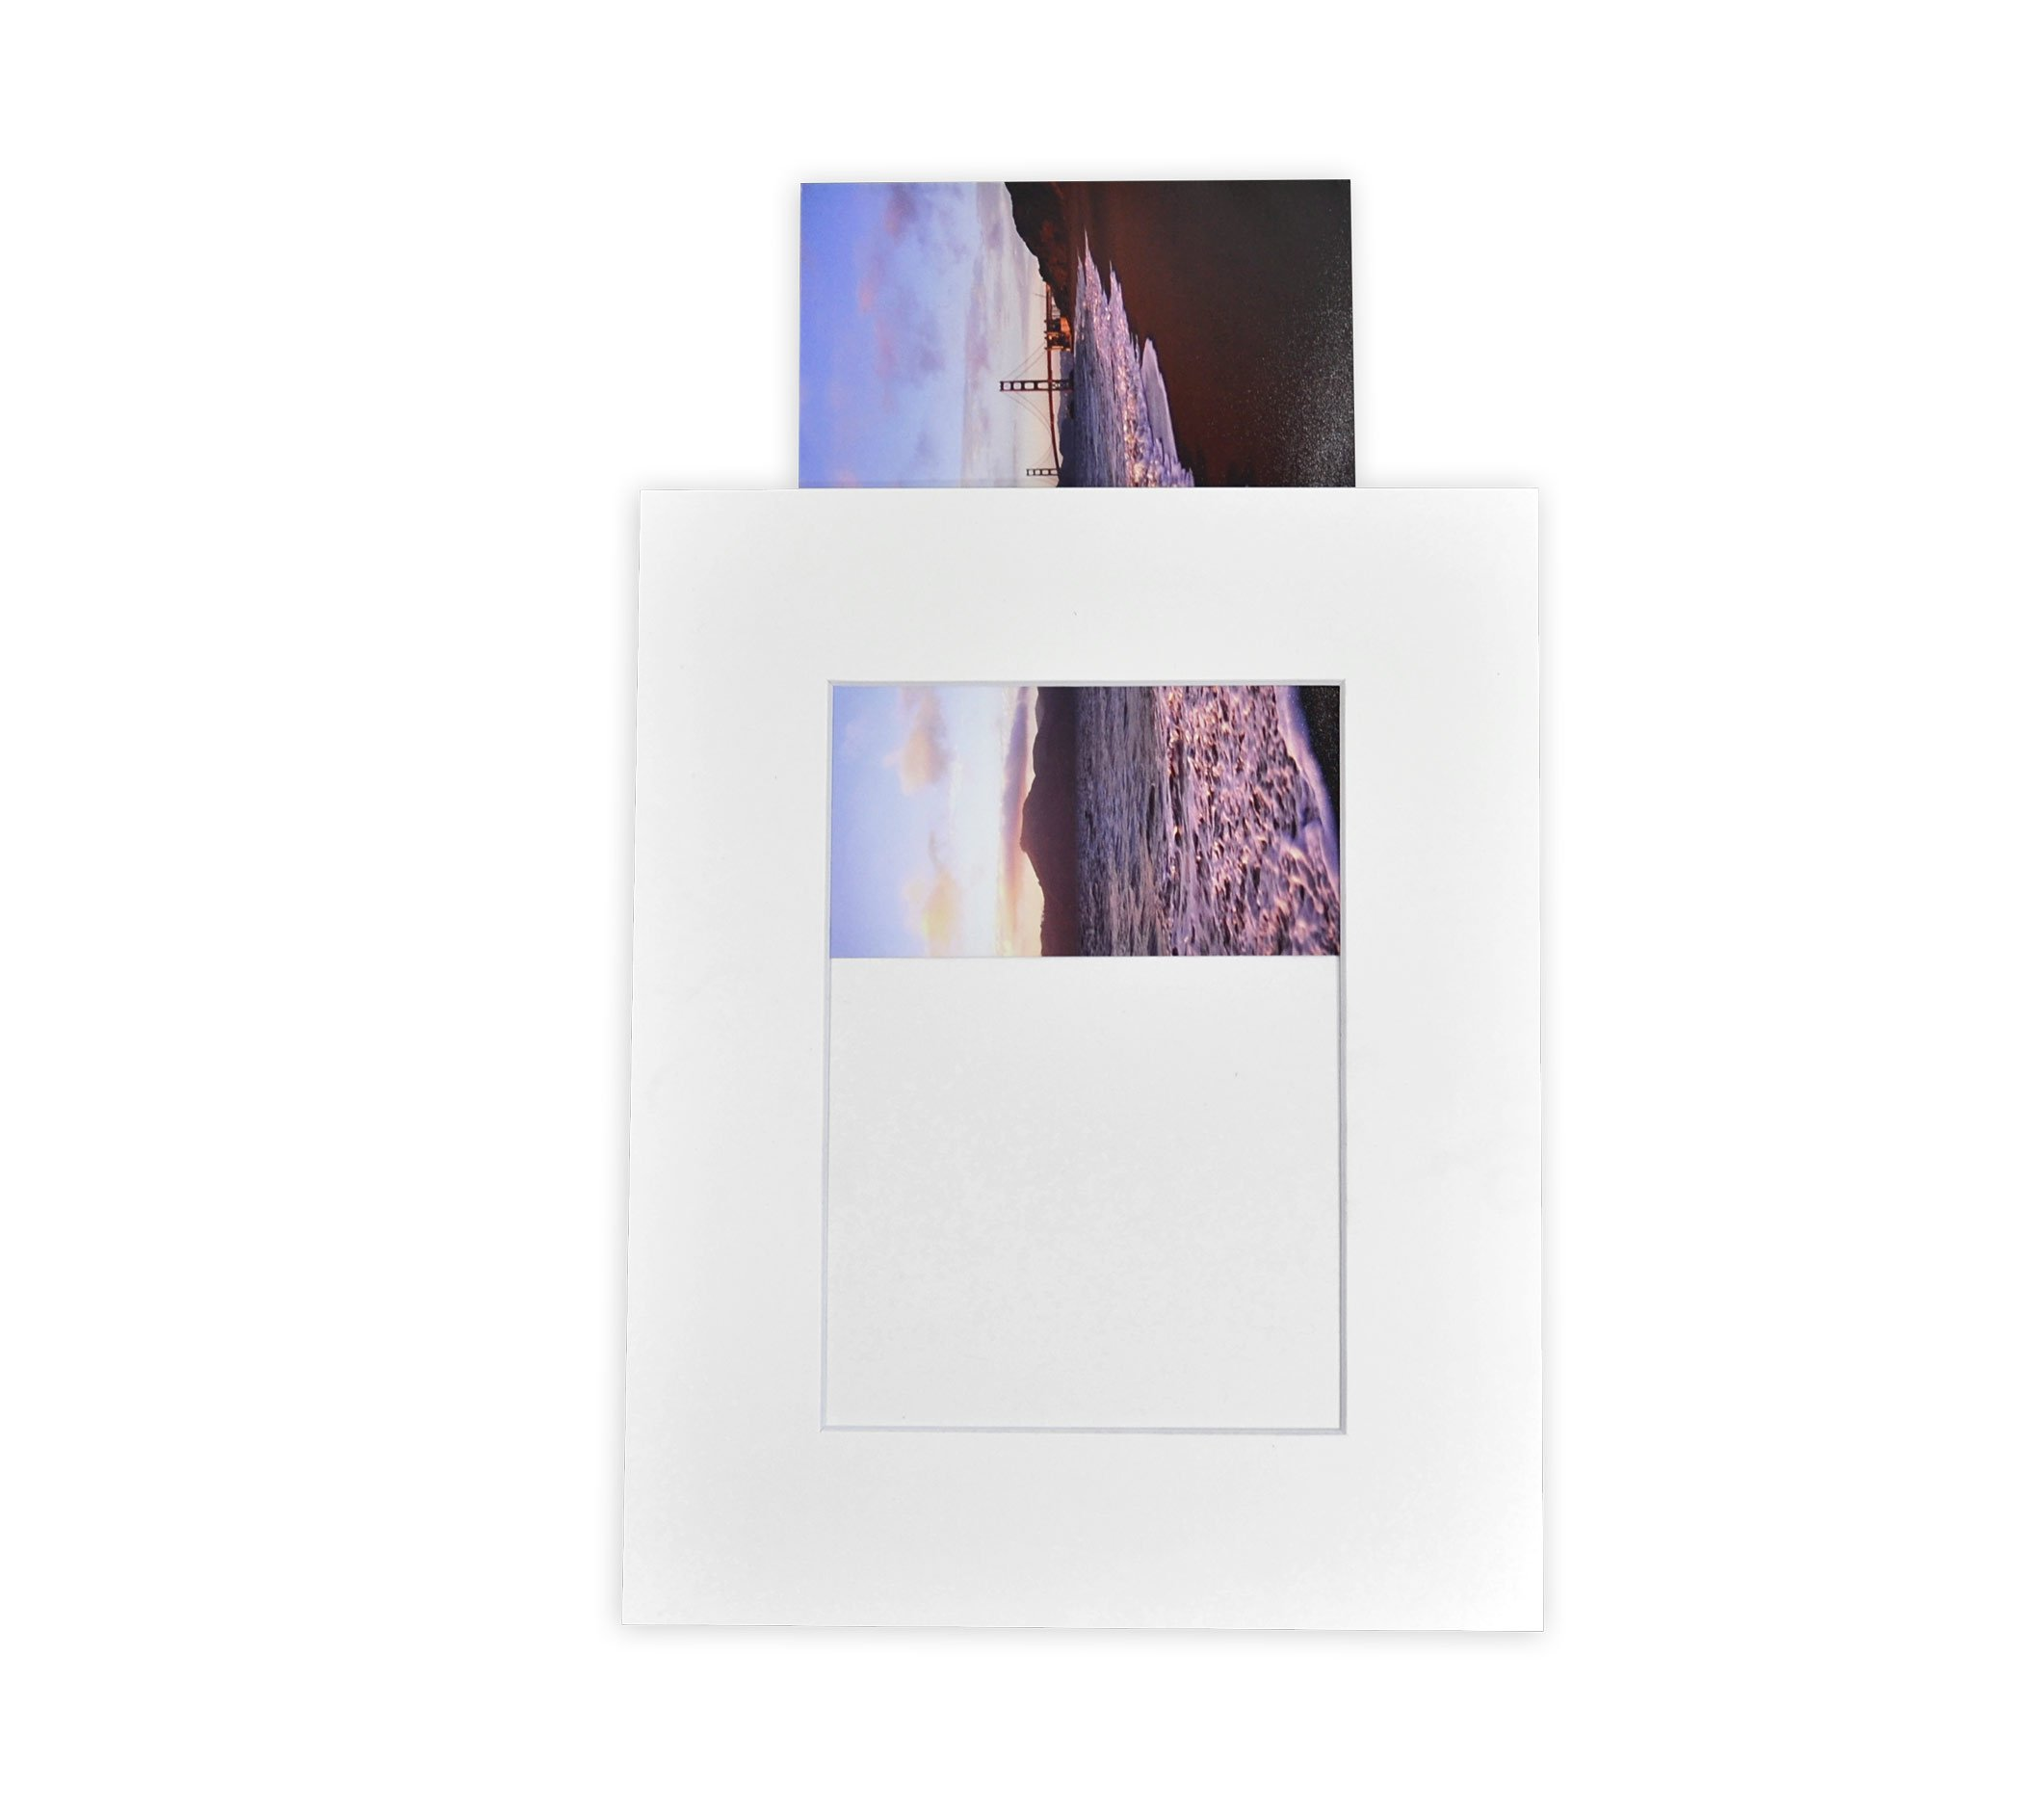 Golden State Art, Pack of 25 White 8x10 Slip-in Pre-Adhesive Photo Mat for 5x7 Picture with Backing Board pre-Assembled, Includes 25 Clear Bags by Golden State Art